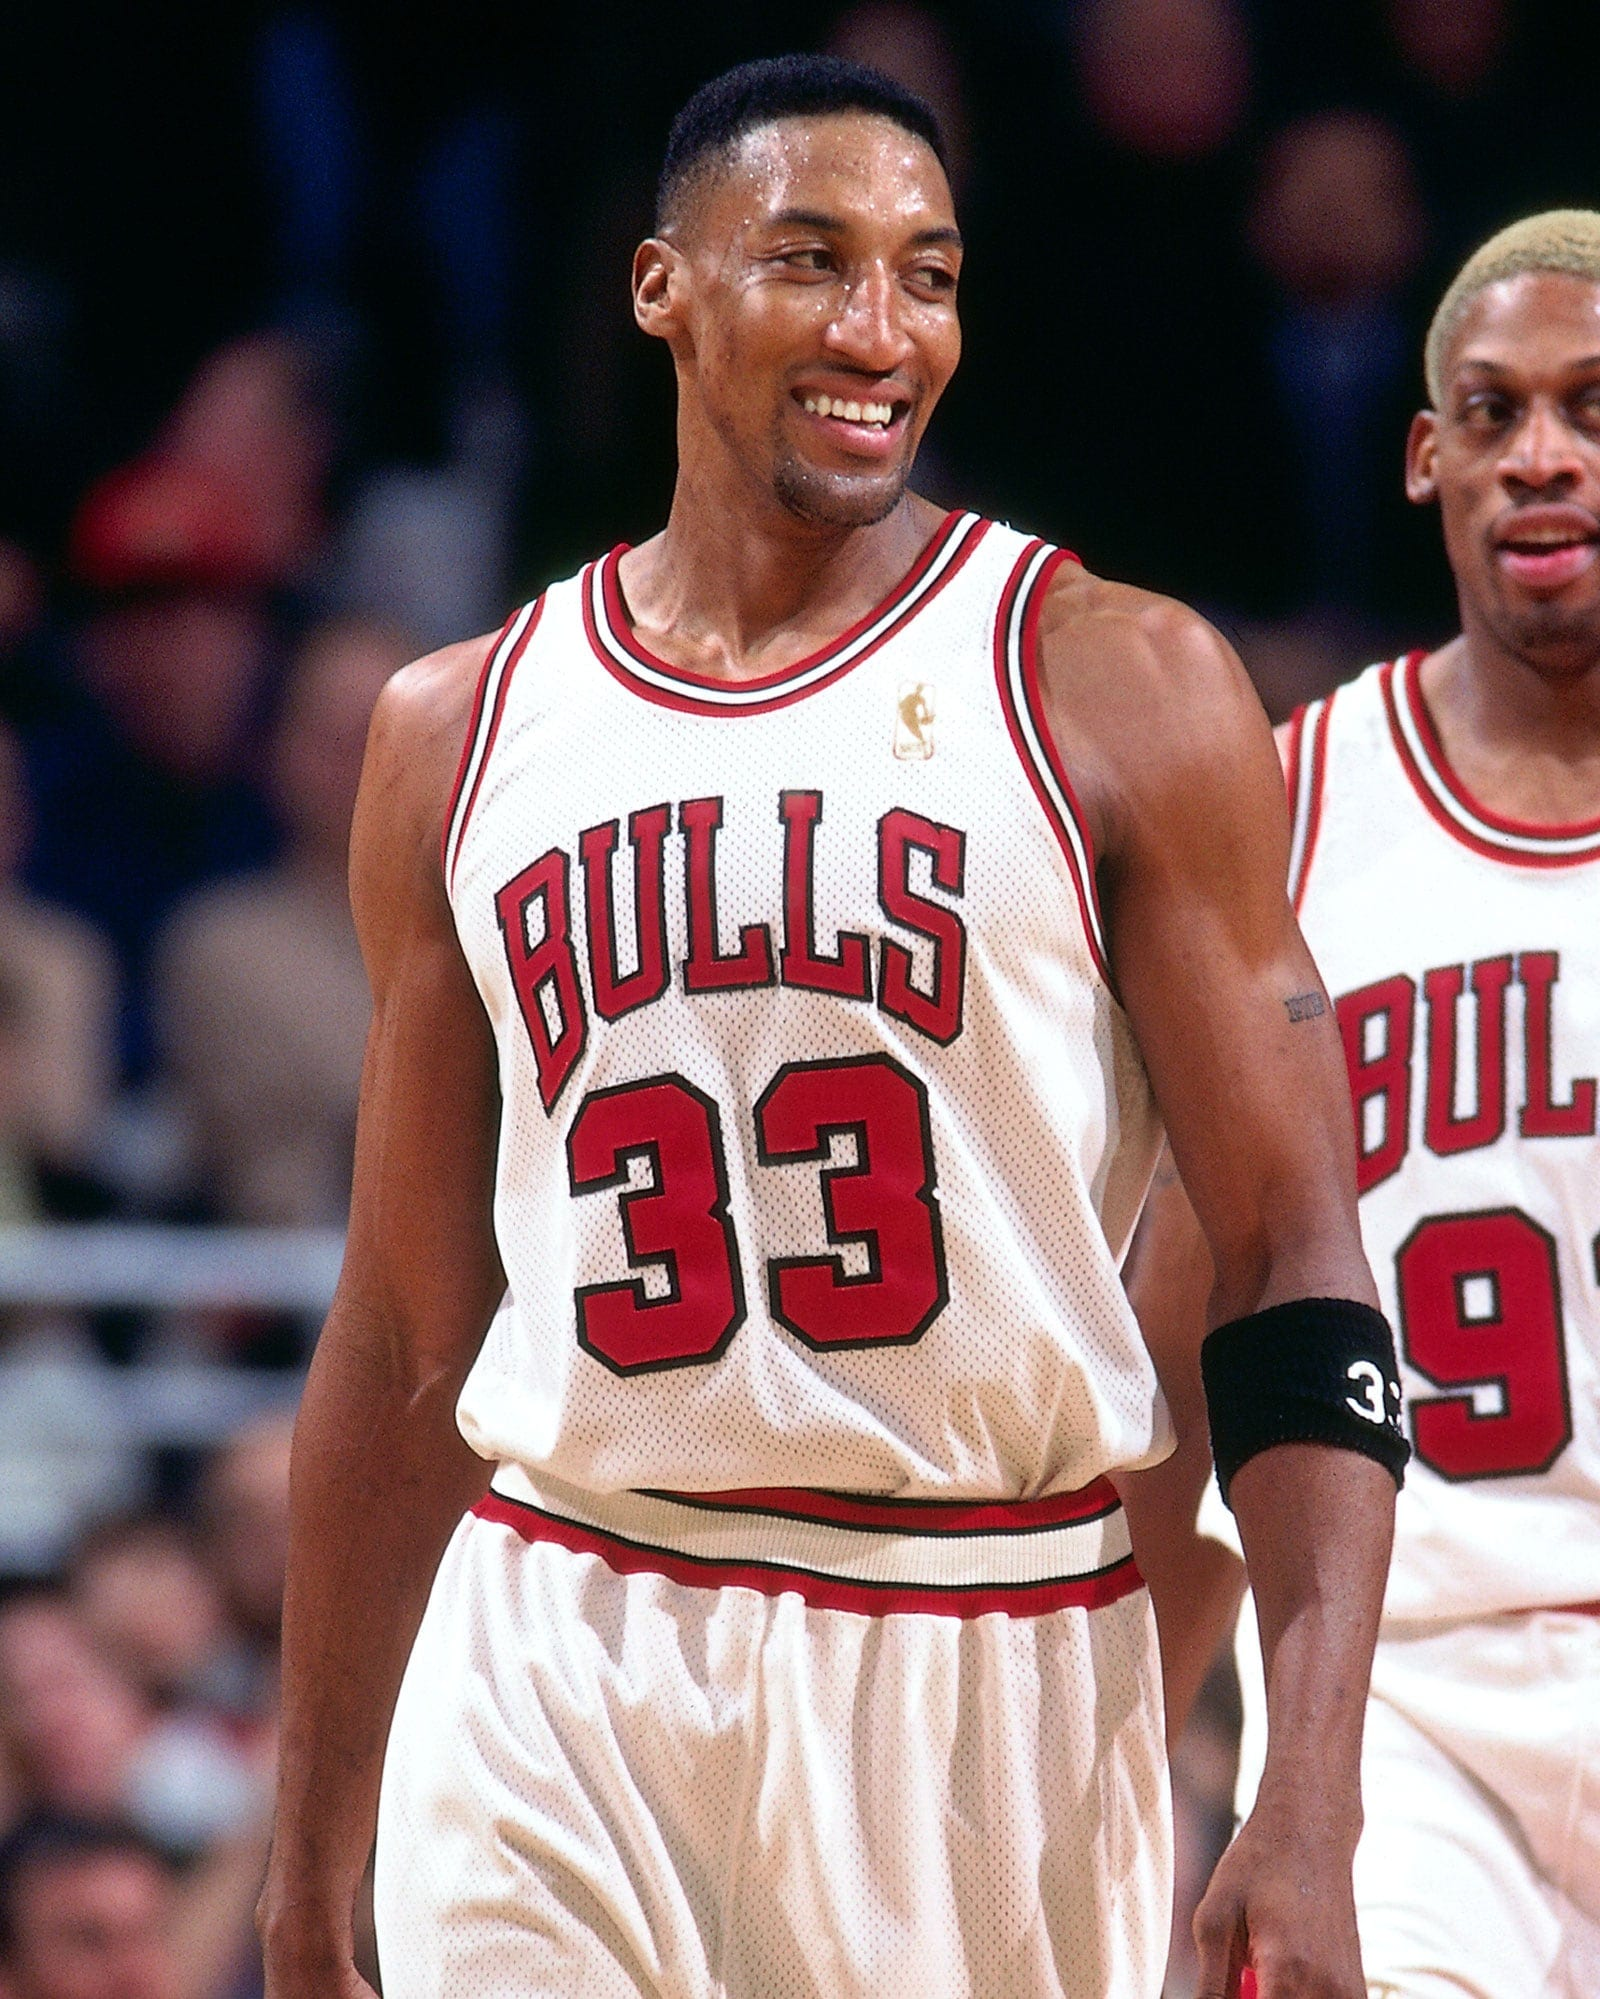 Bulls contracts network international investment corporation